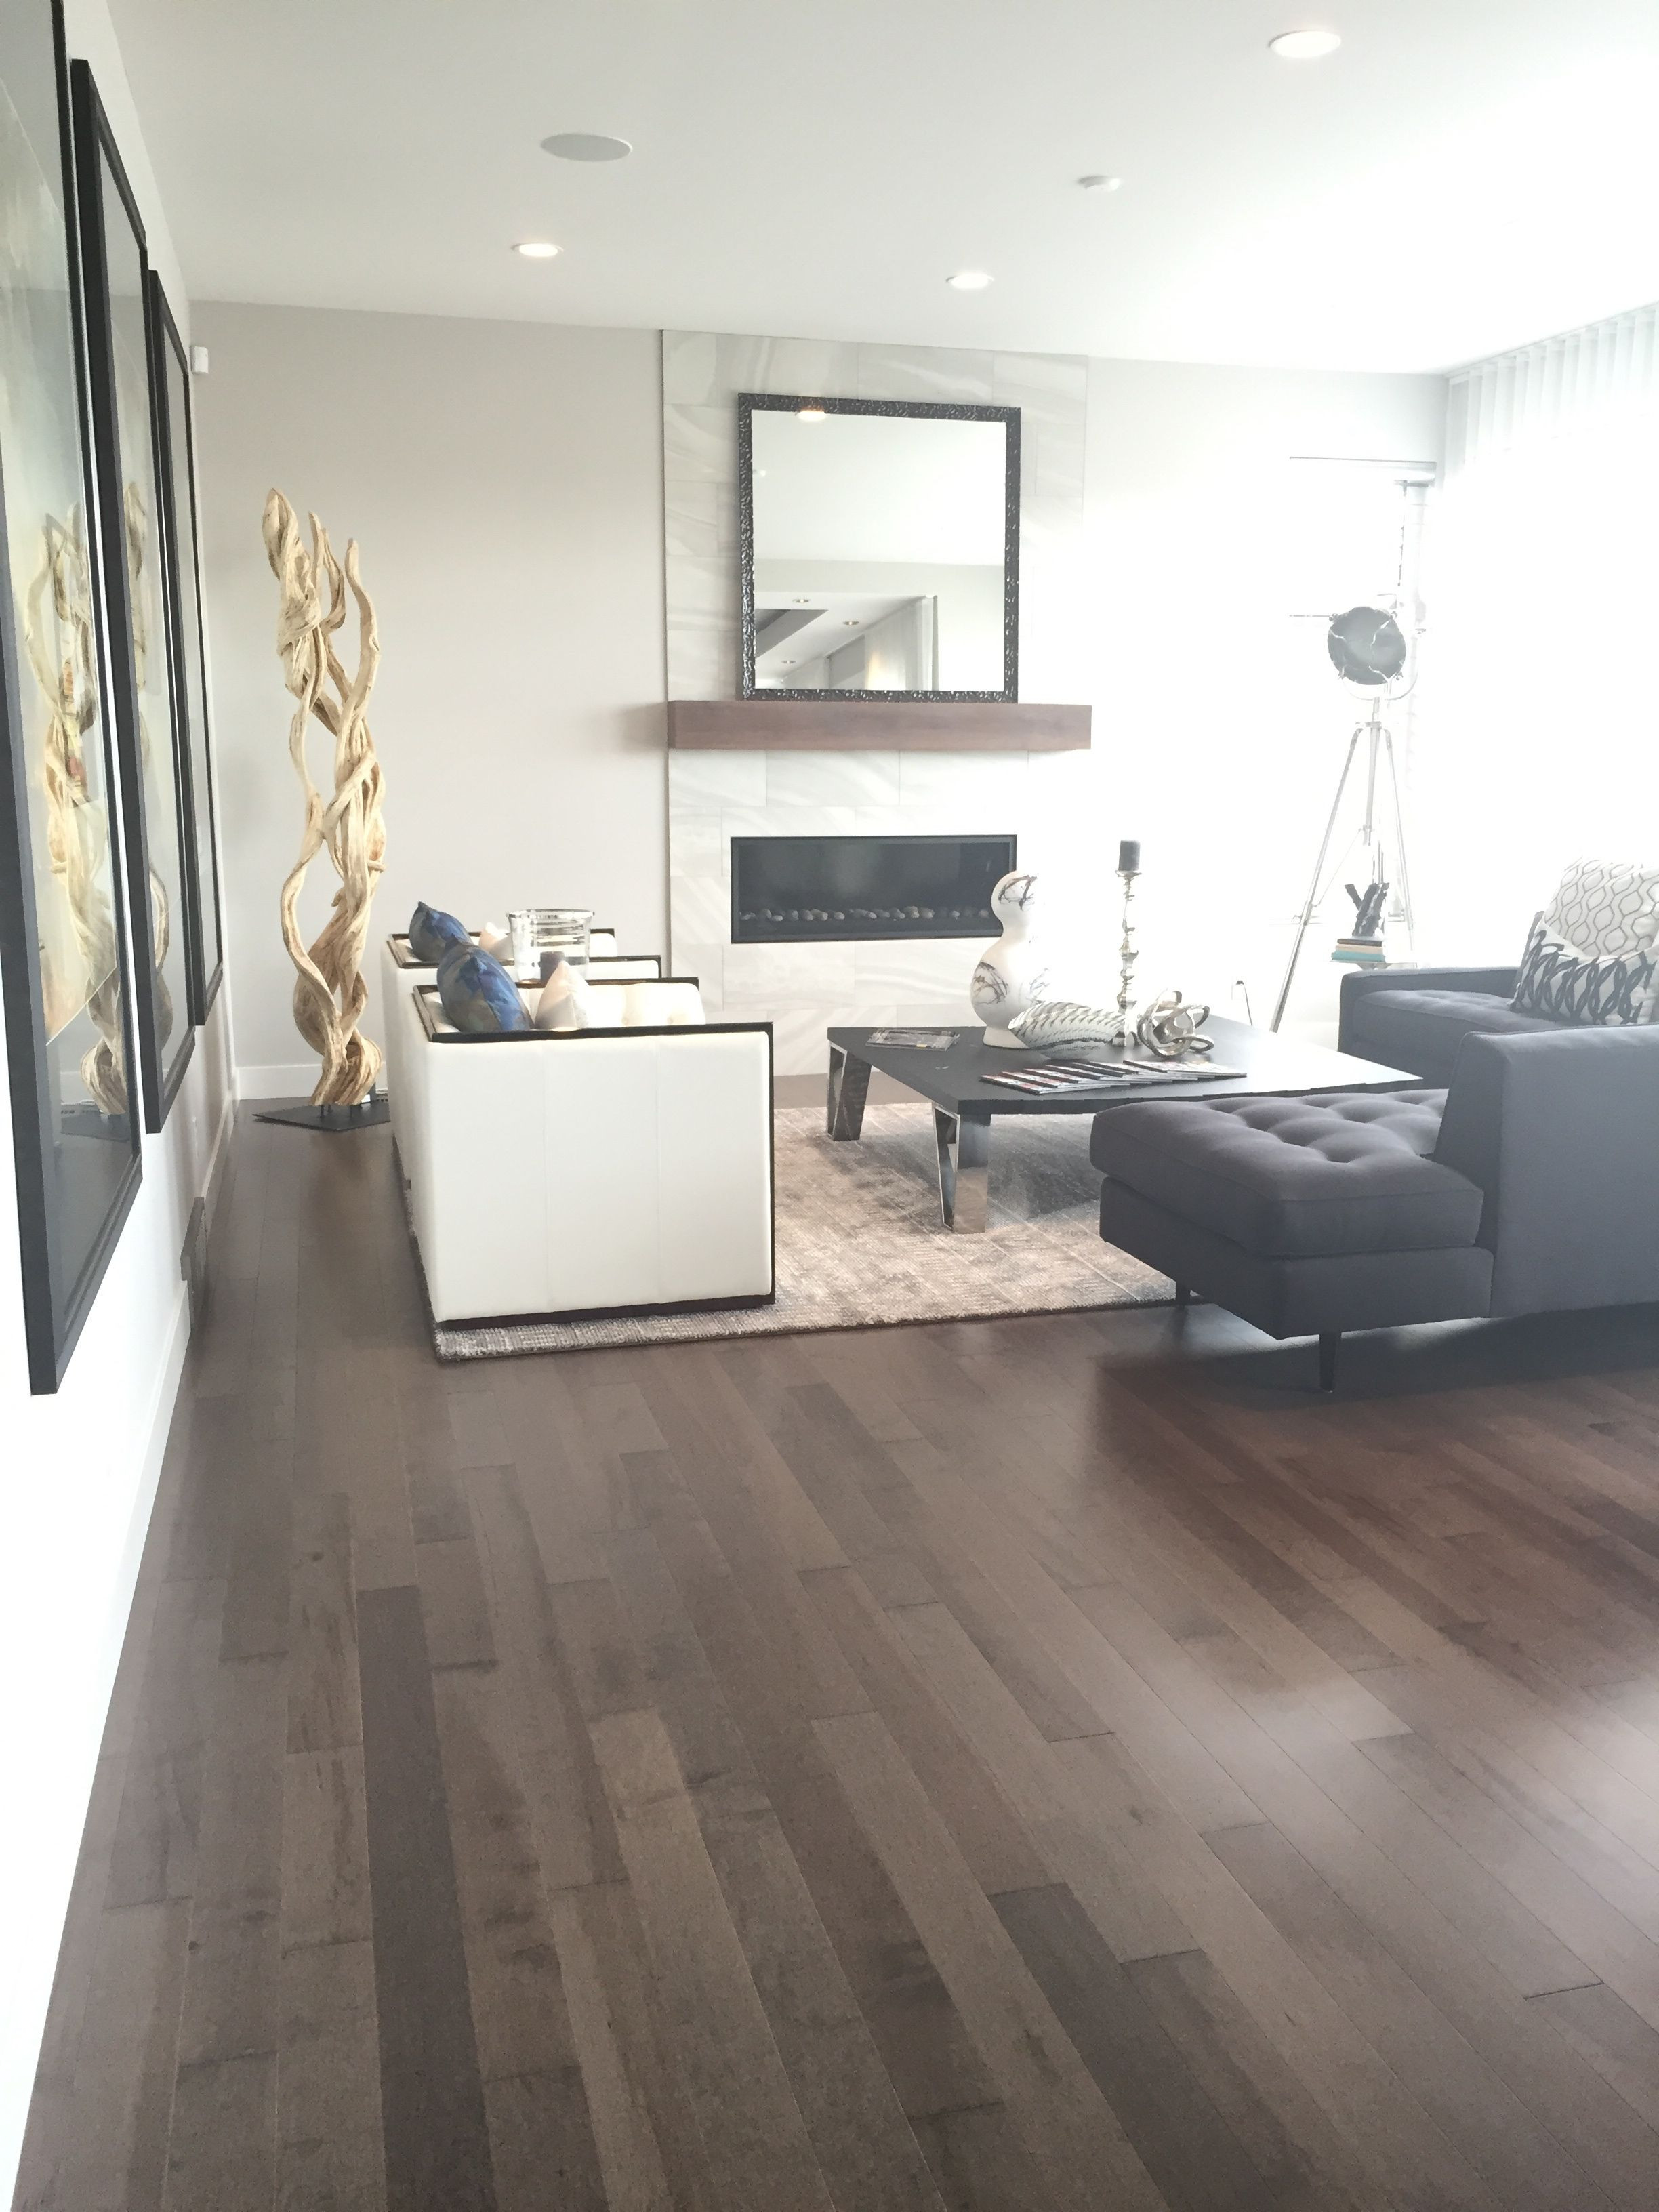 hardwood floor refinishing bucks county pa of smoky grey essential hard maple tradition lauzon hardwood inside beautiful living room from the cantata showhome featuring lauzons smokey grey hard maple hardwood flooring from the essential collection